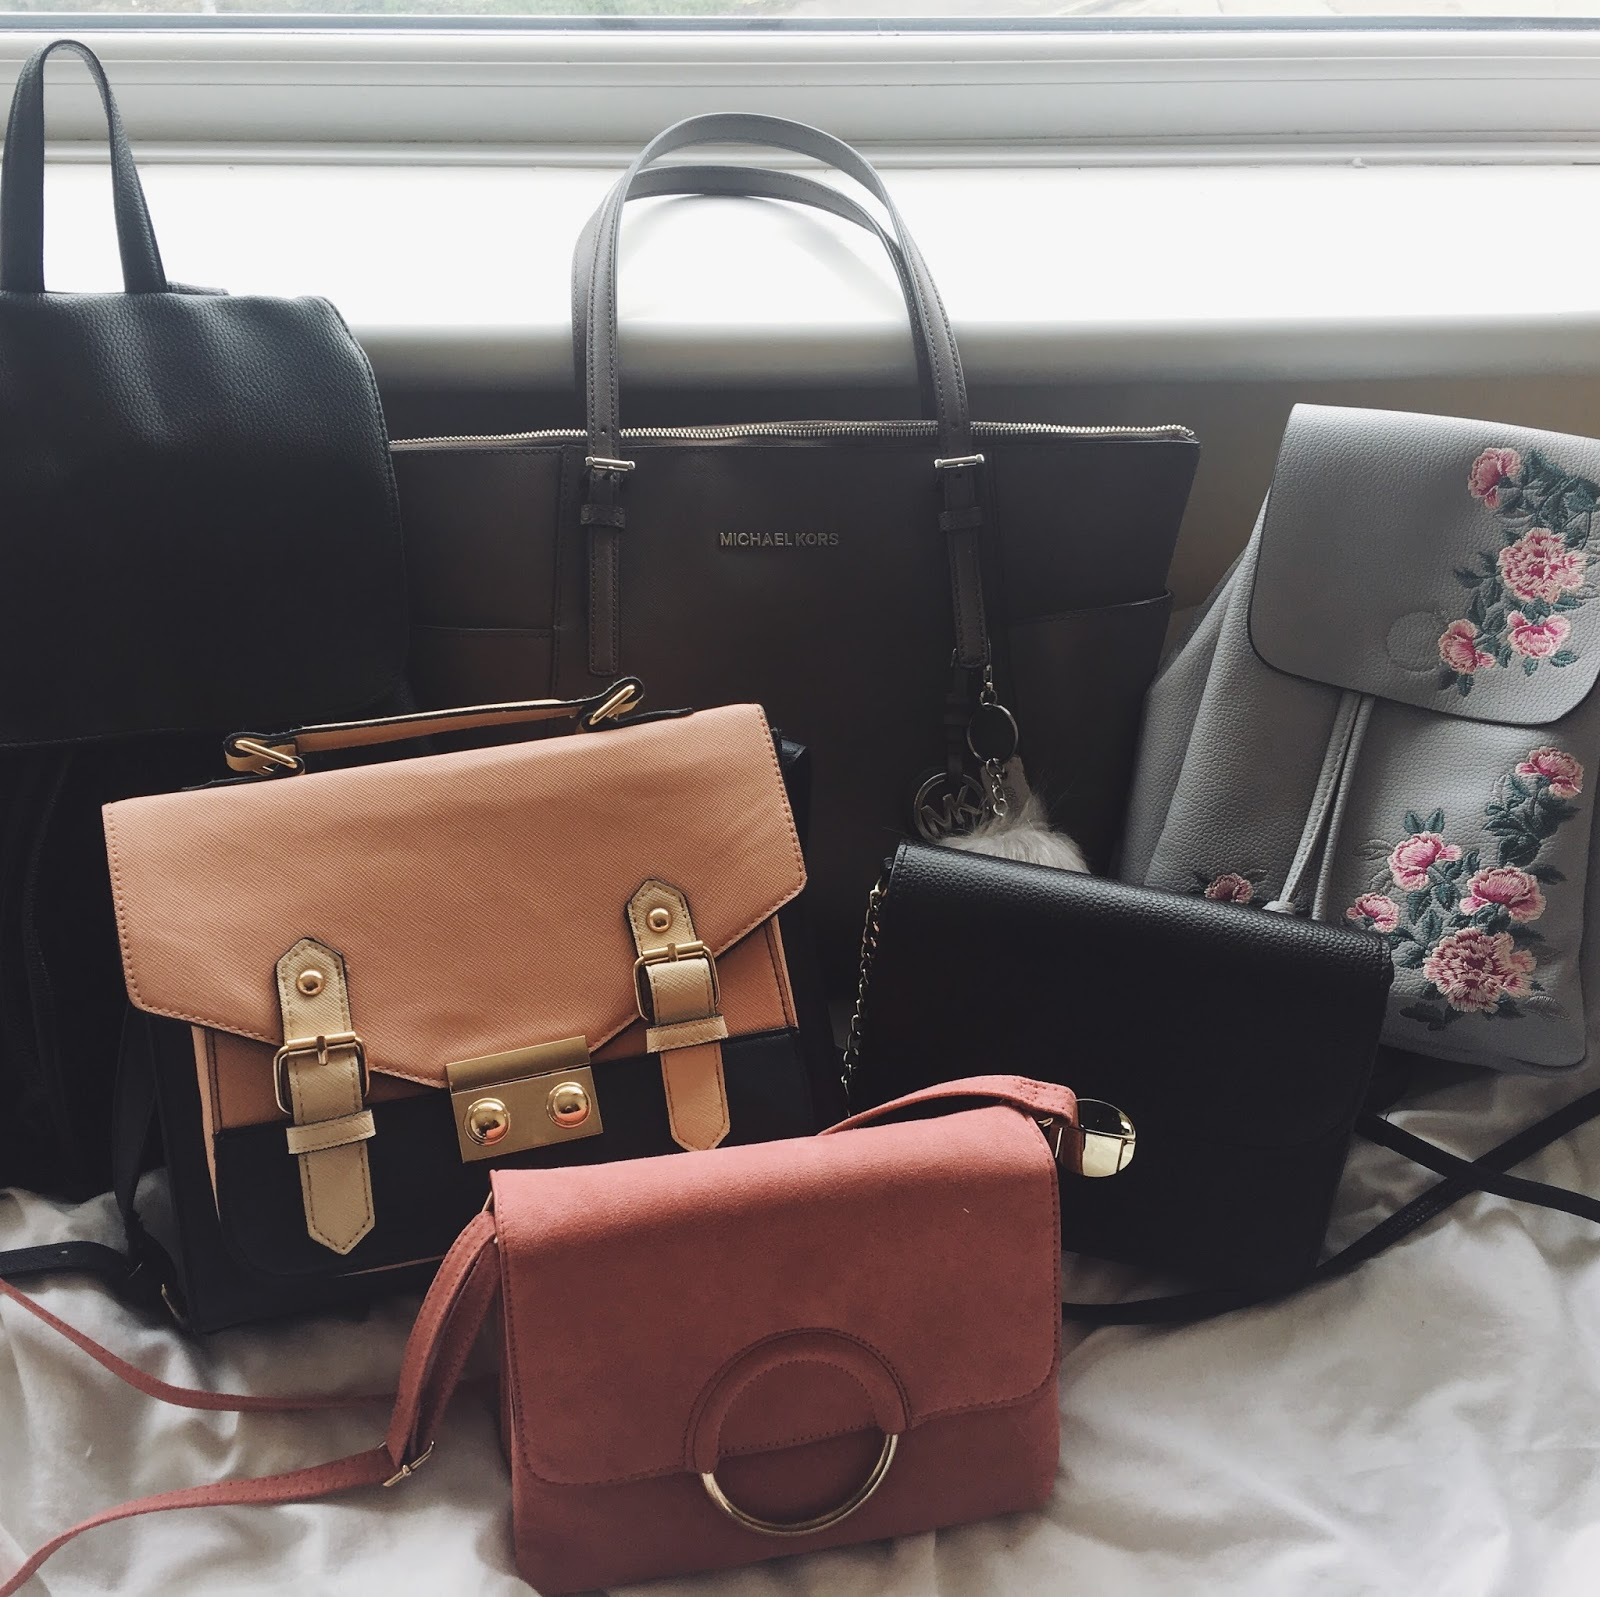 My Work Bag And Little Shoulder Bags If I Don T Want To Carry A Massive Bulky Around With Me Also Pride Joy Michael Kors